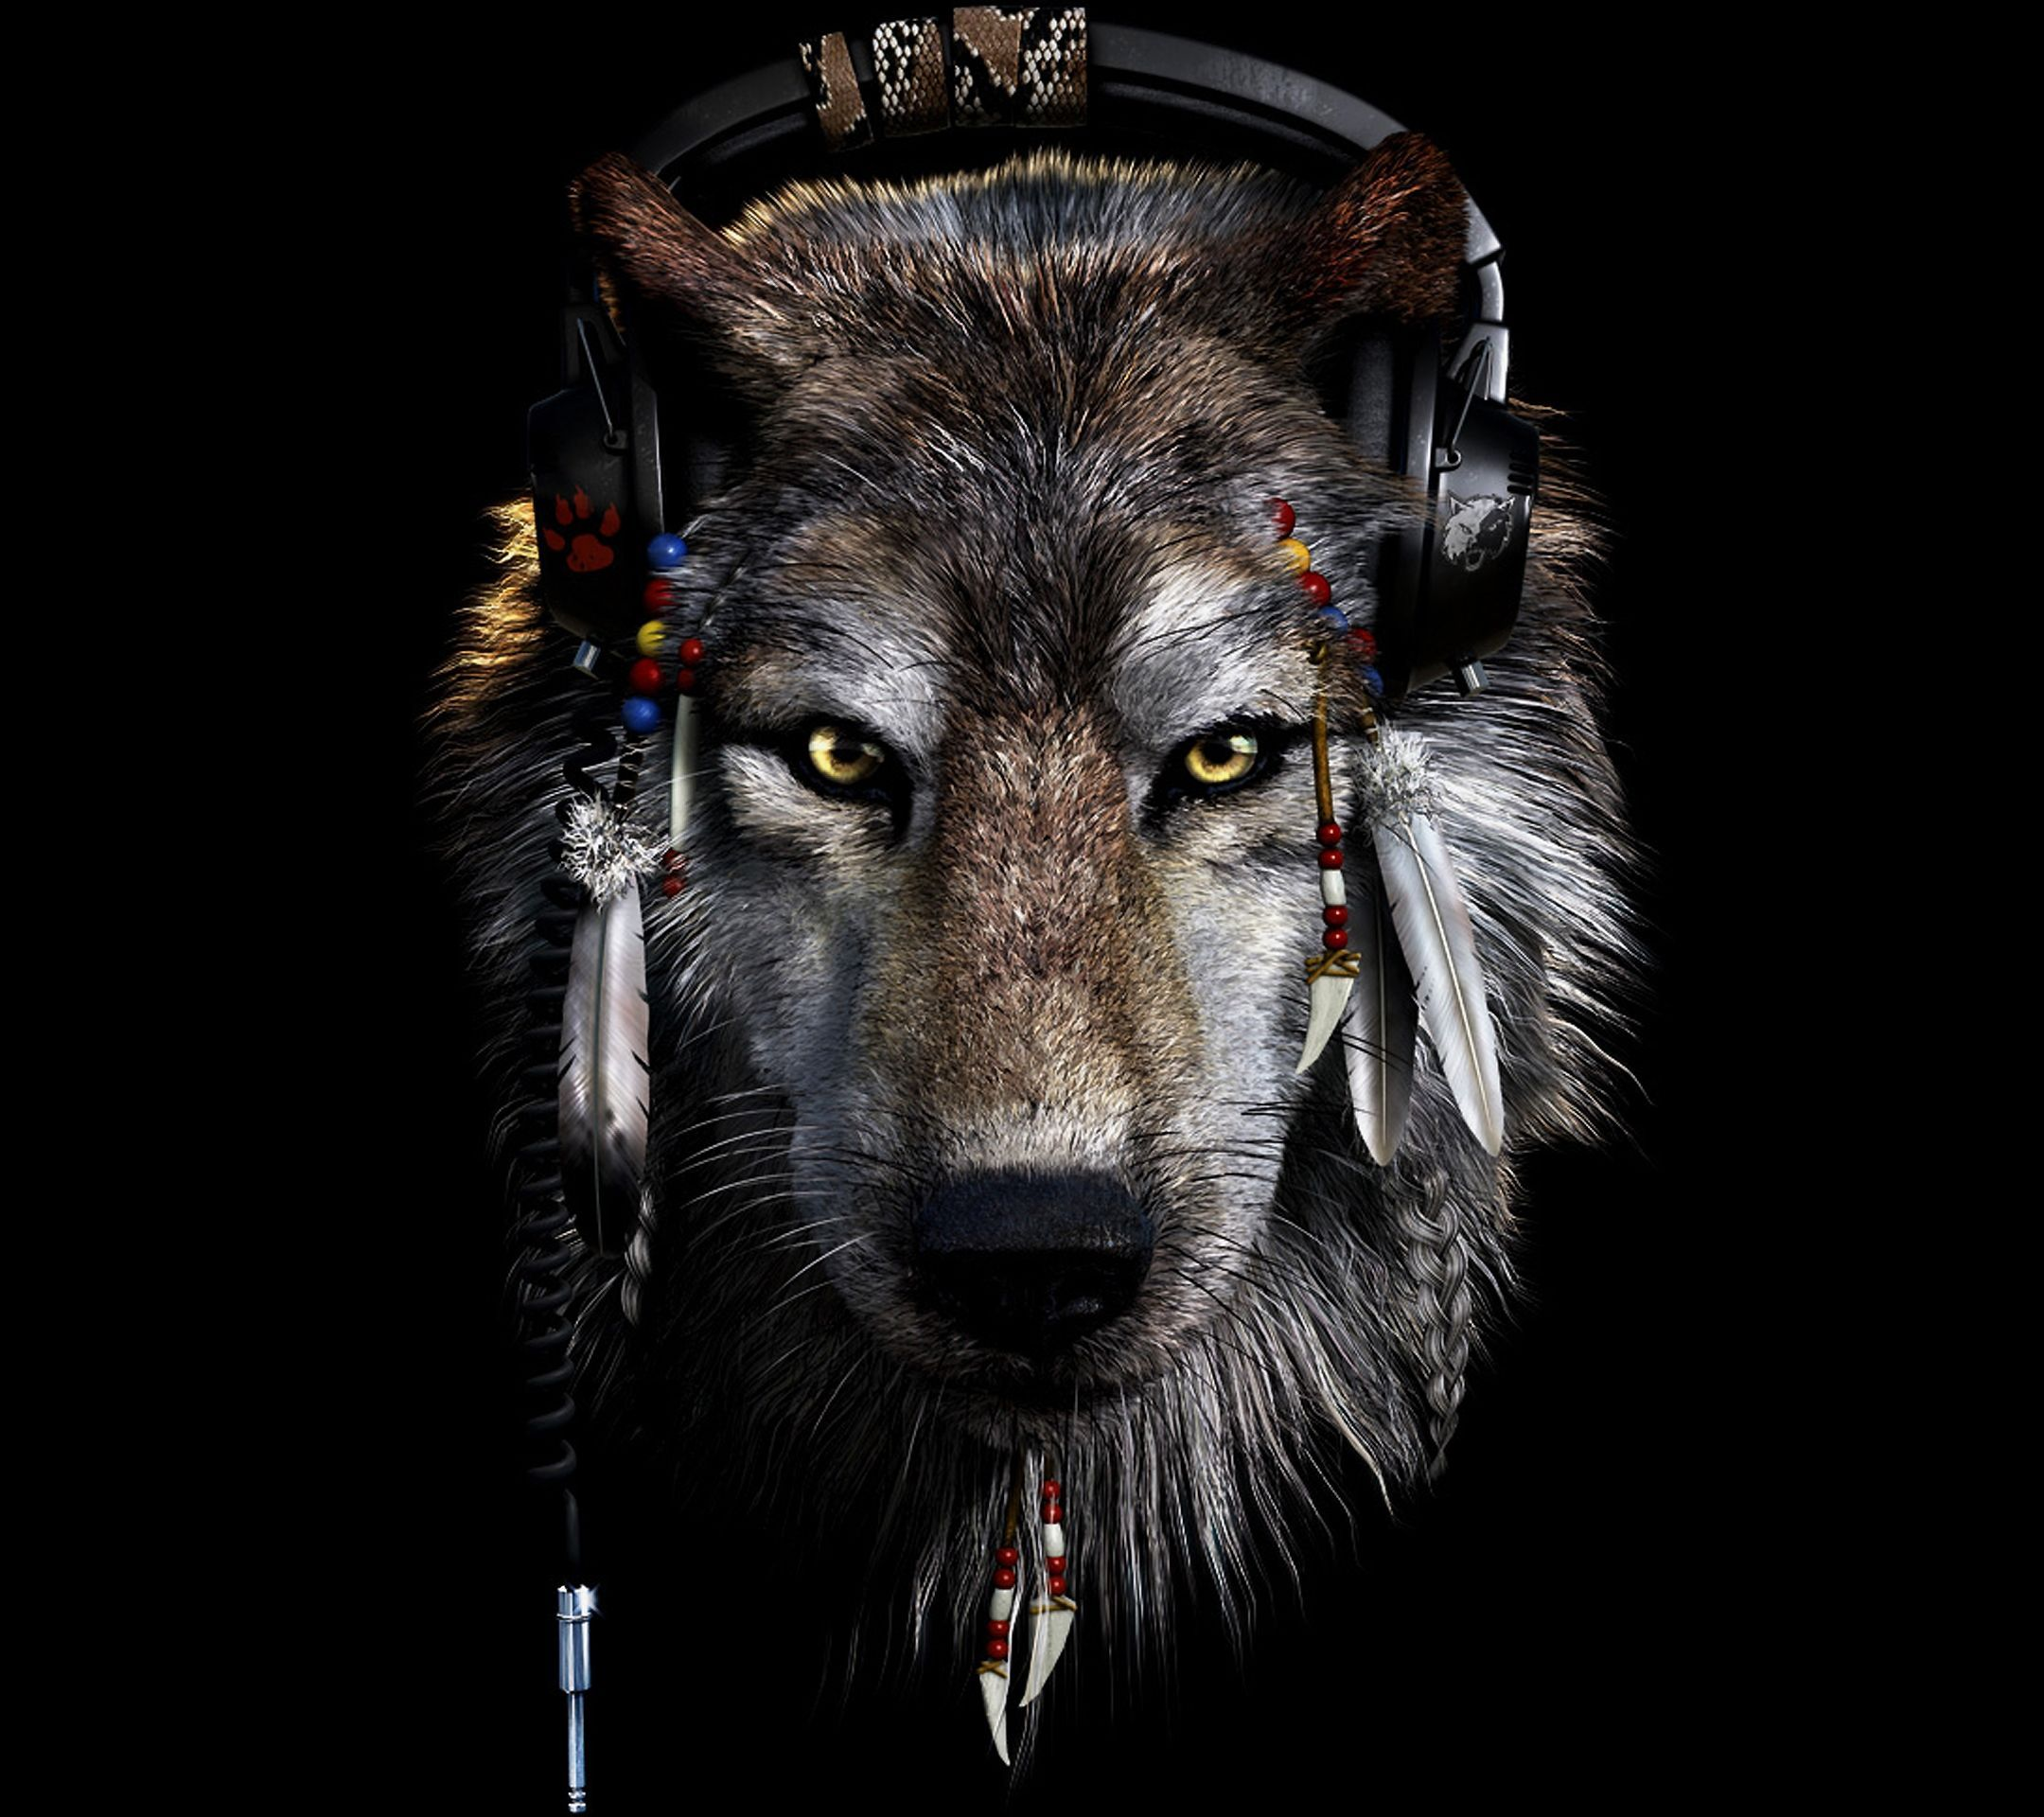 Native American Animal Art Wallpapers Top Free Native American Animal Art Backgrounds Wallpaper Wolf Wallpaper Native American Animals Native American Wolf